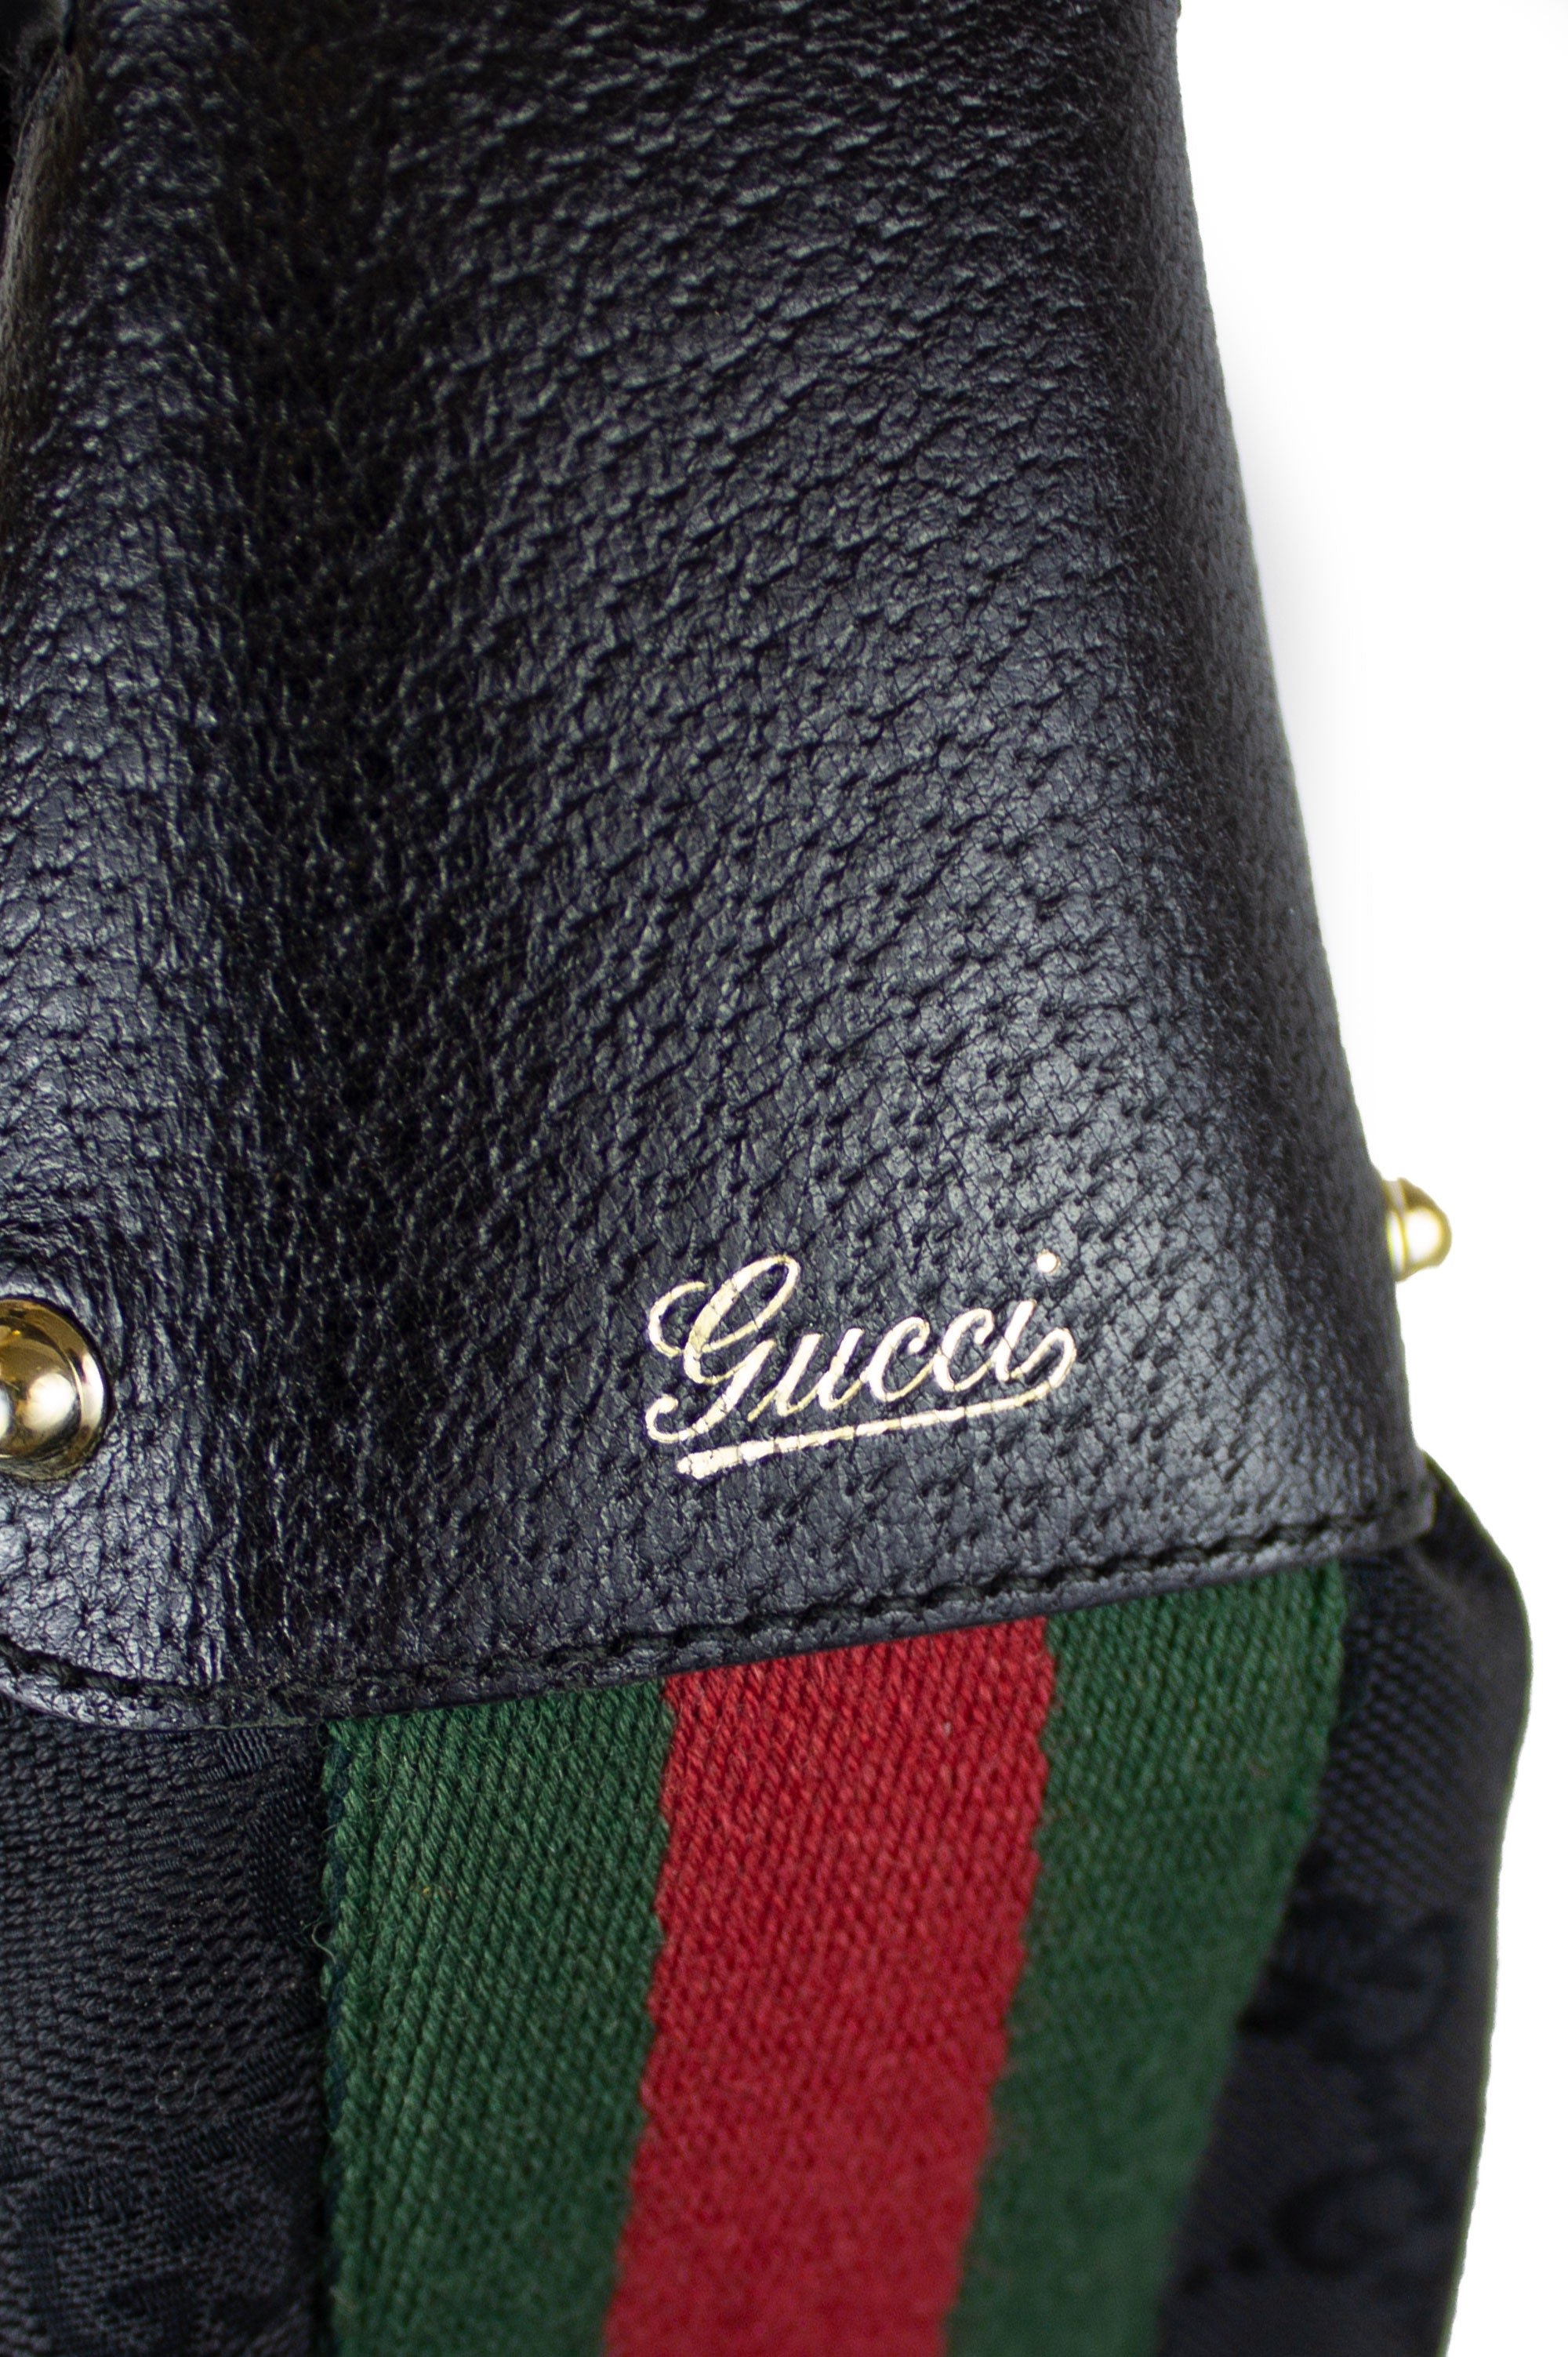 GUCCI Banana Hobo Bag